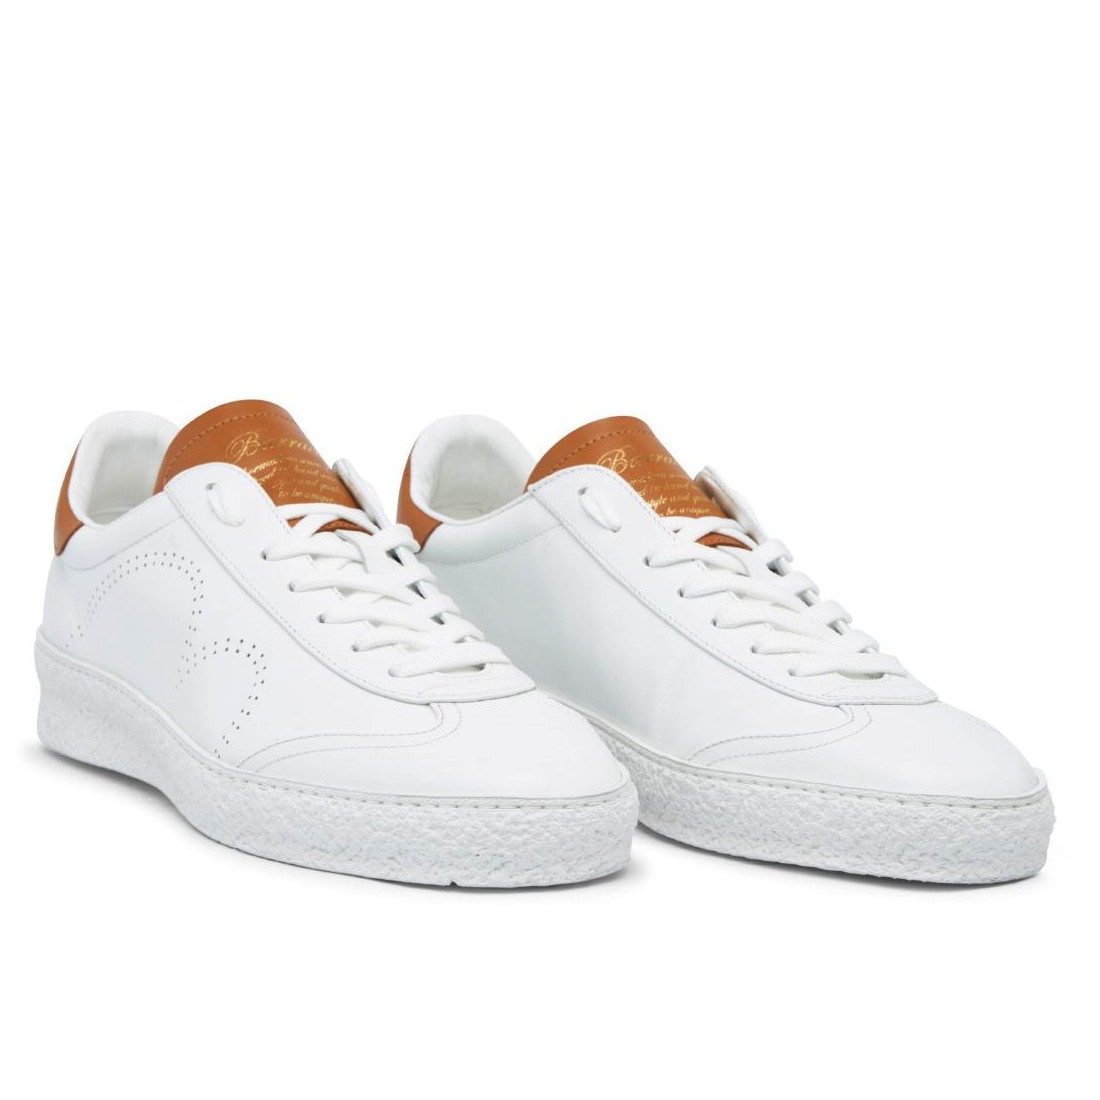 sneakers man barracuda bu3095d06pmt06i97a 4349